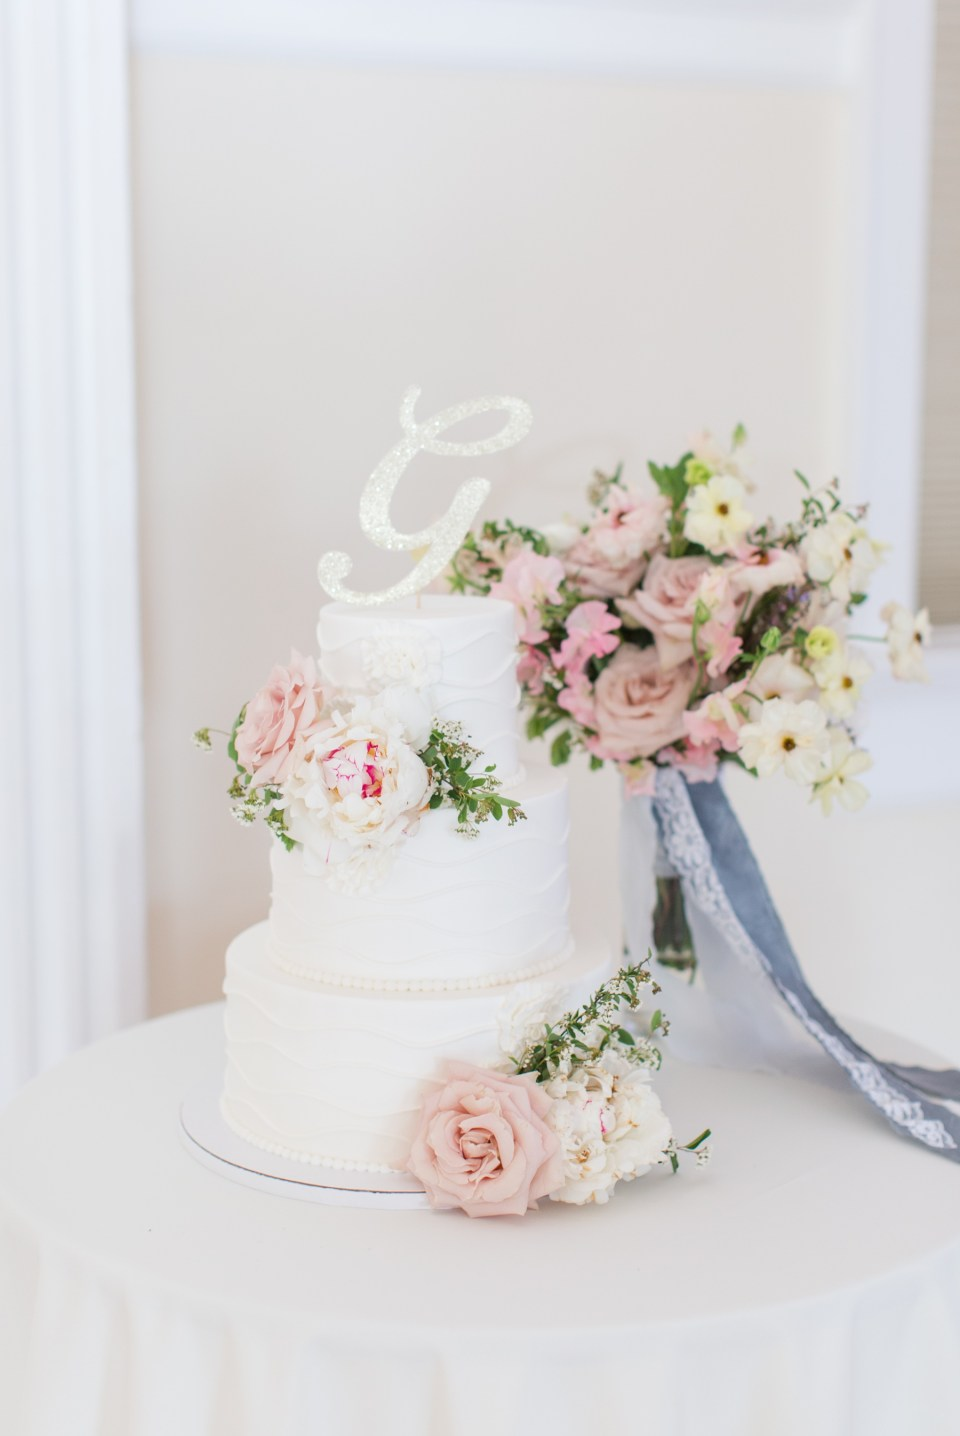 Classic white wedding cake with peonies. Colorado wedding photographer.